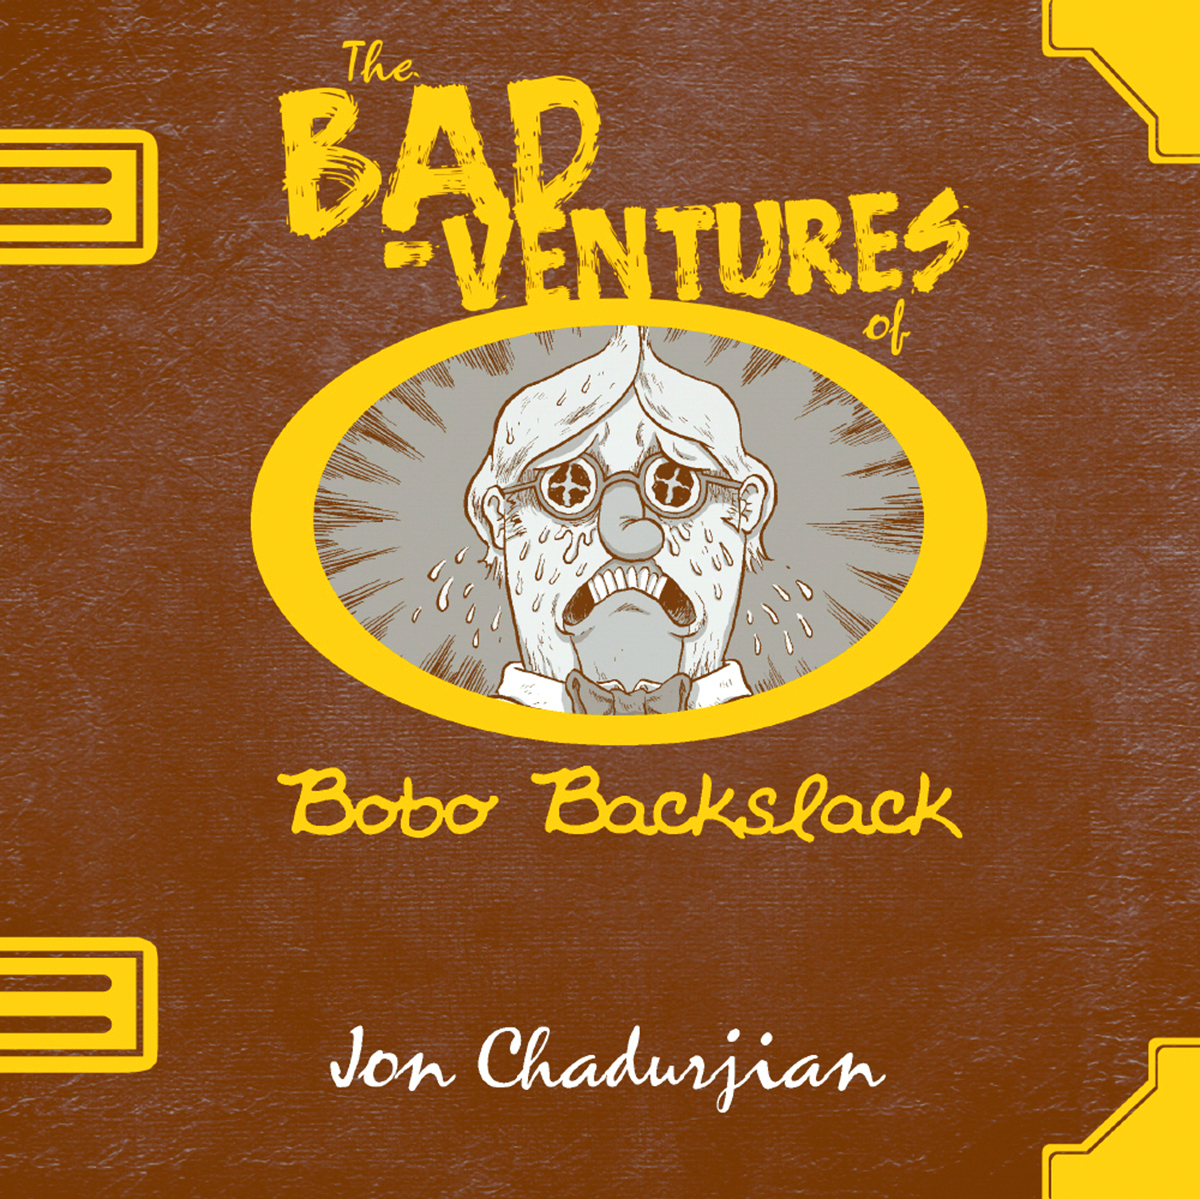 BAD VENTURES BOBO BACKSLACK GN